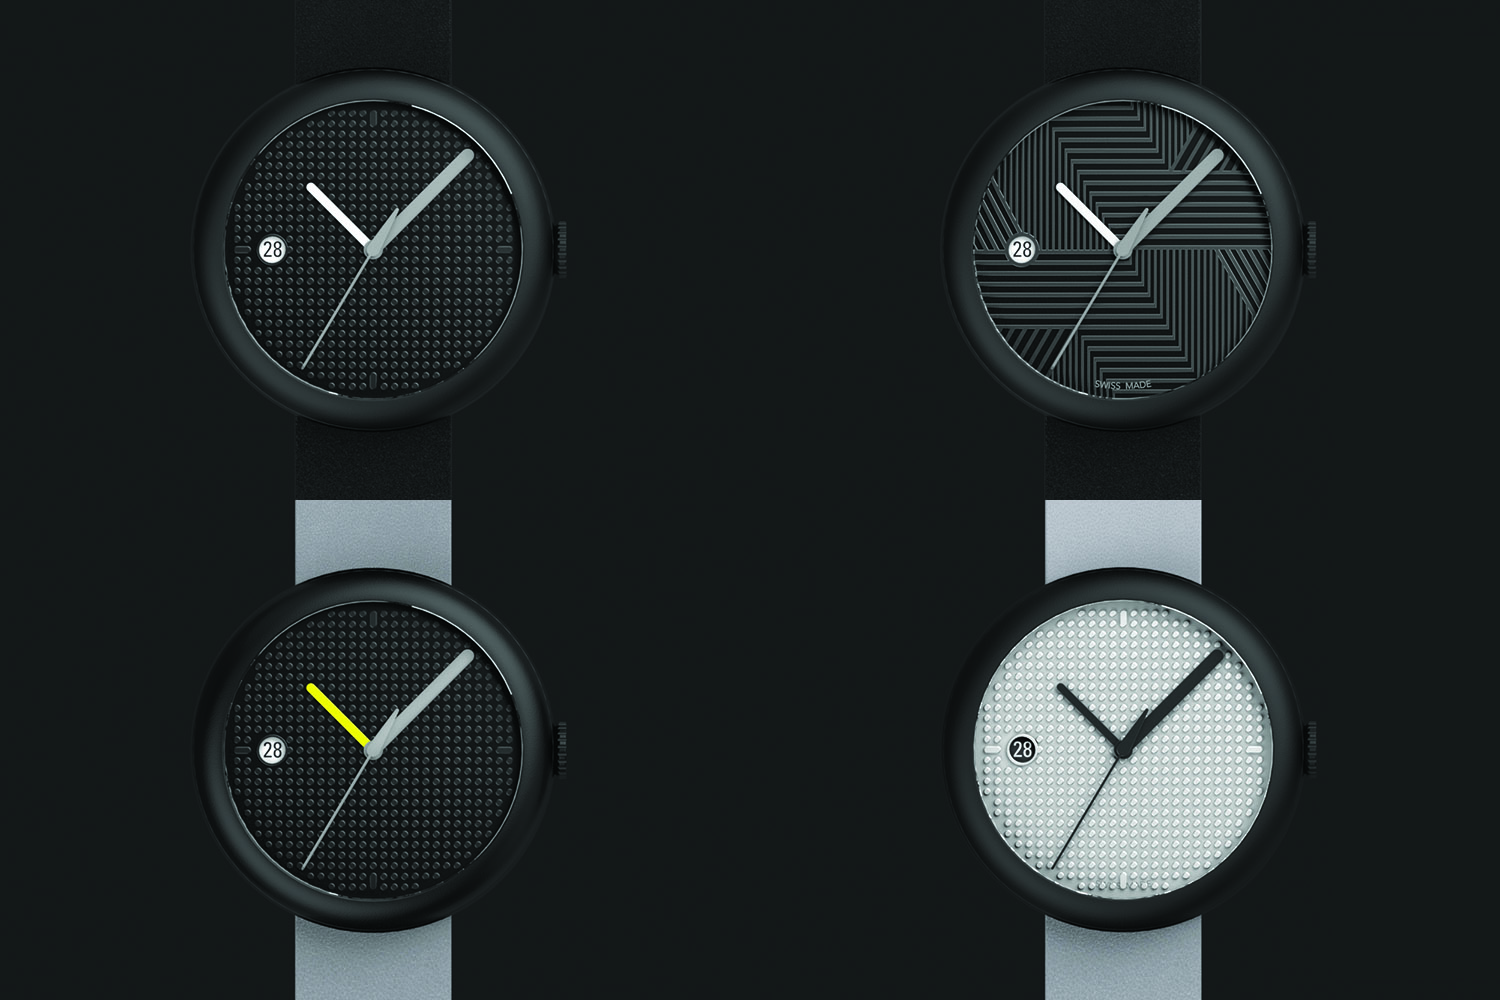 objest-automatic-customizable-watches-2